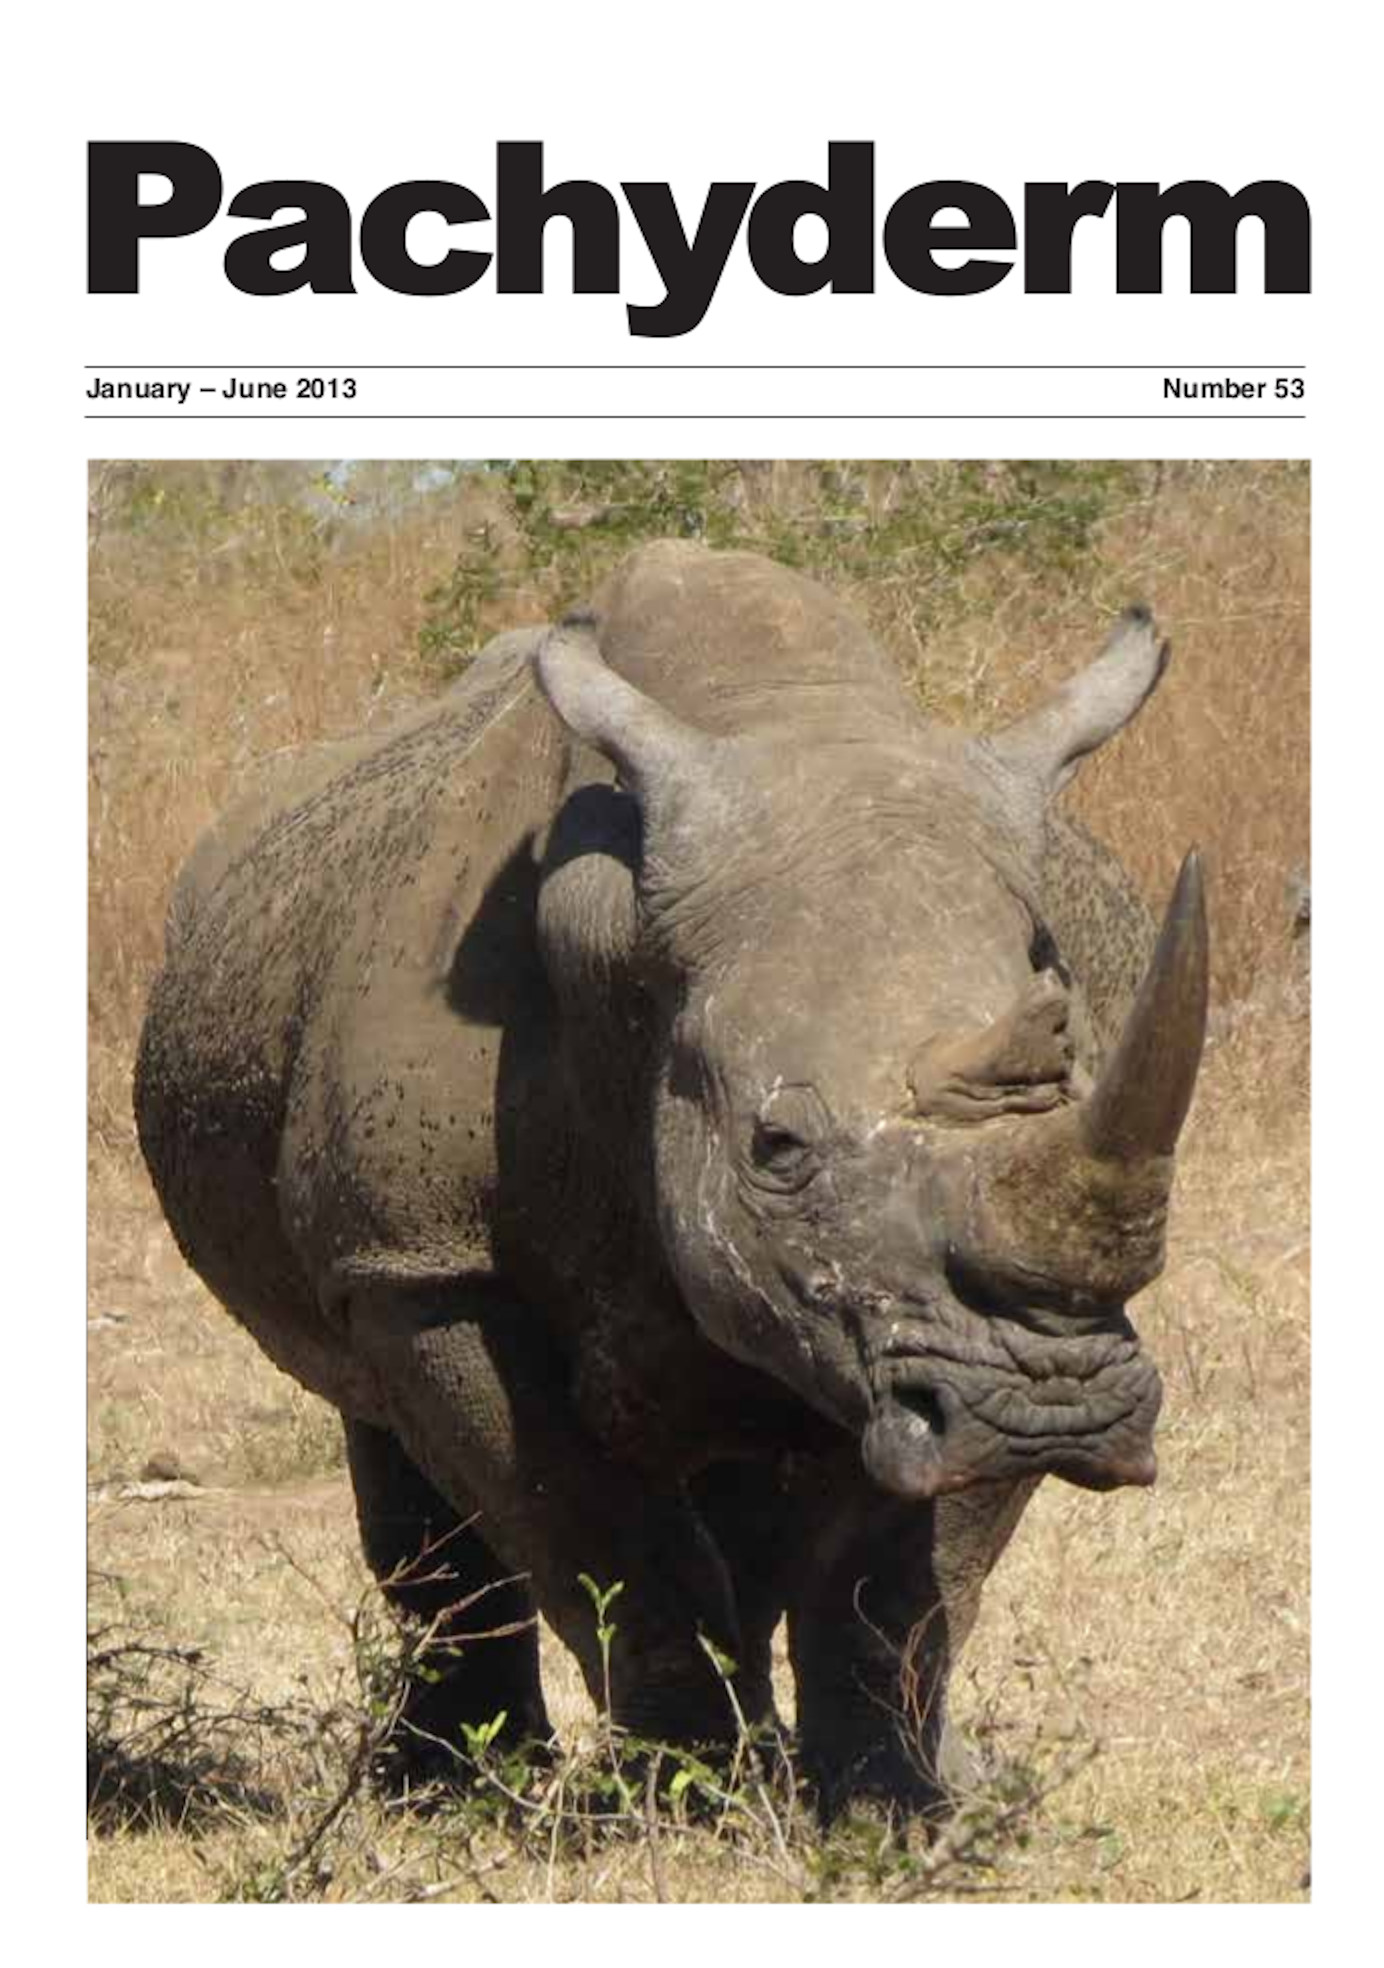 Cover: African rhino in Kruger National Park, South Africa © Bibhab K. Talukdar